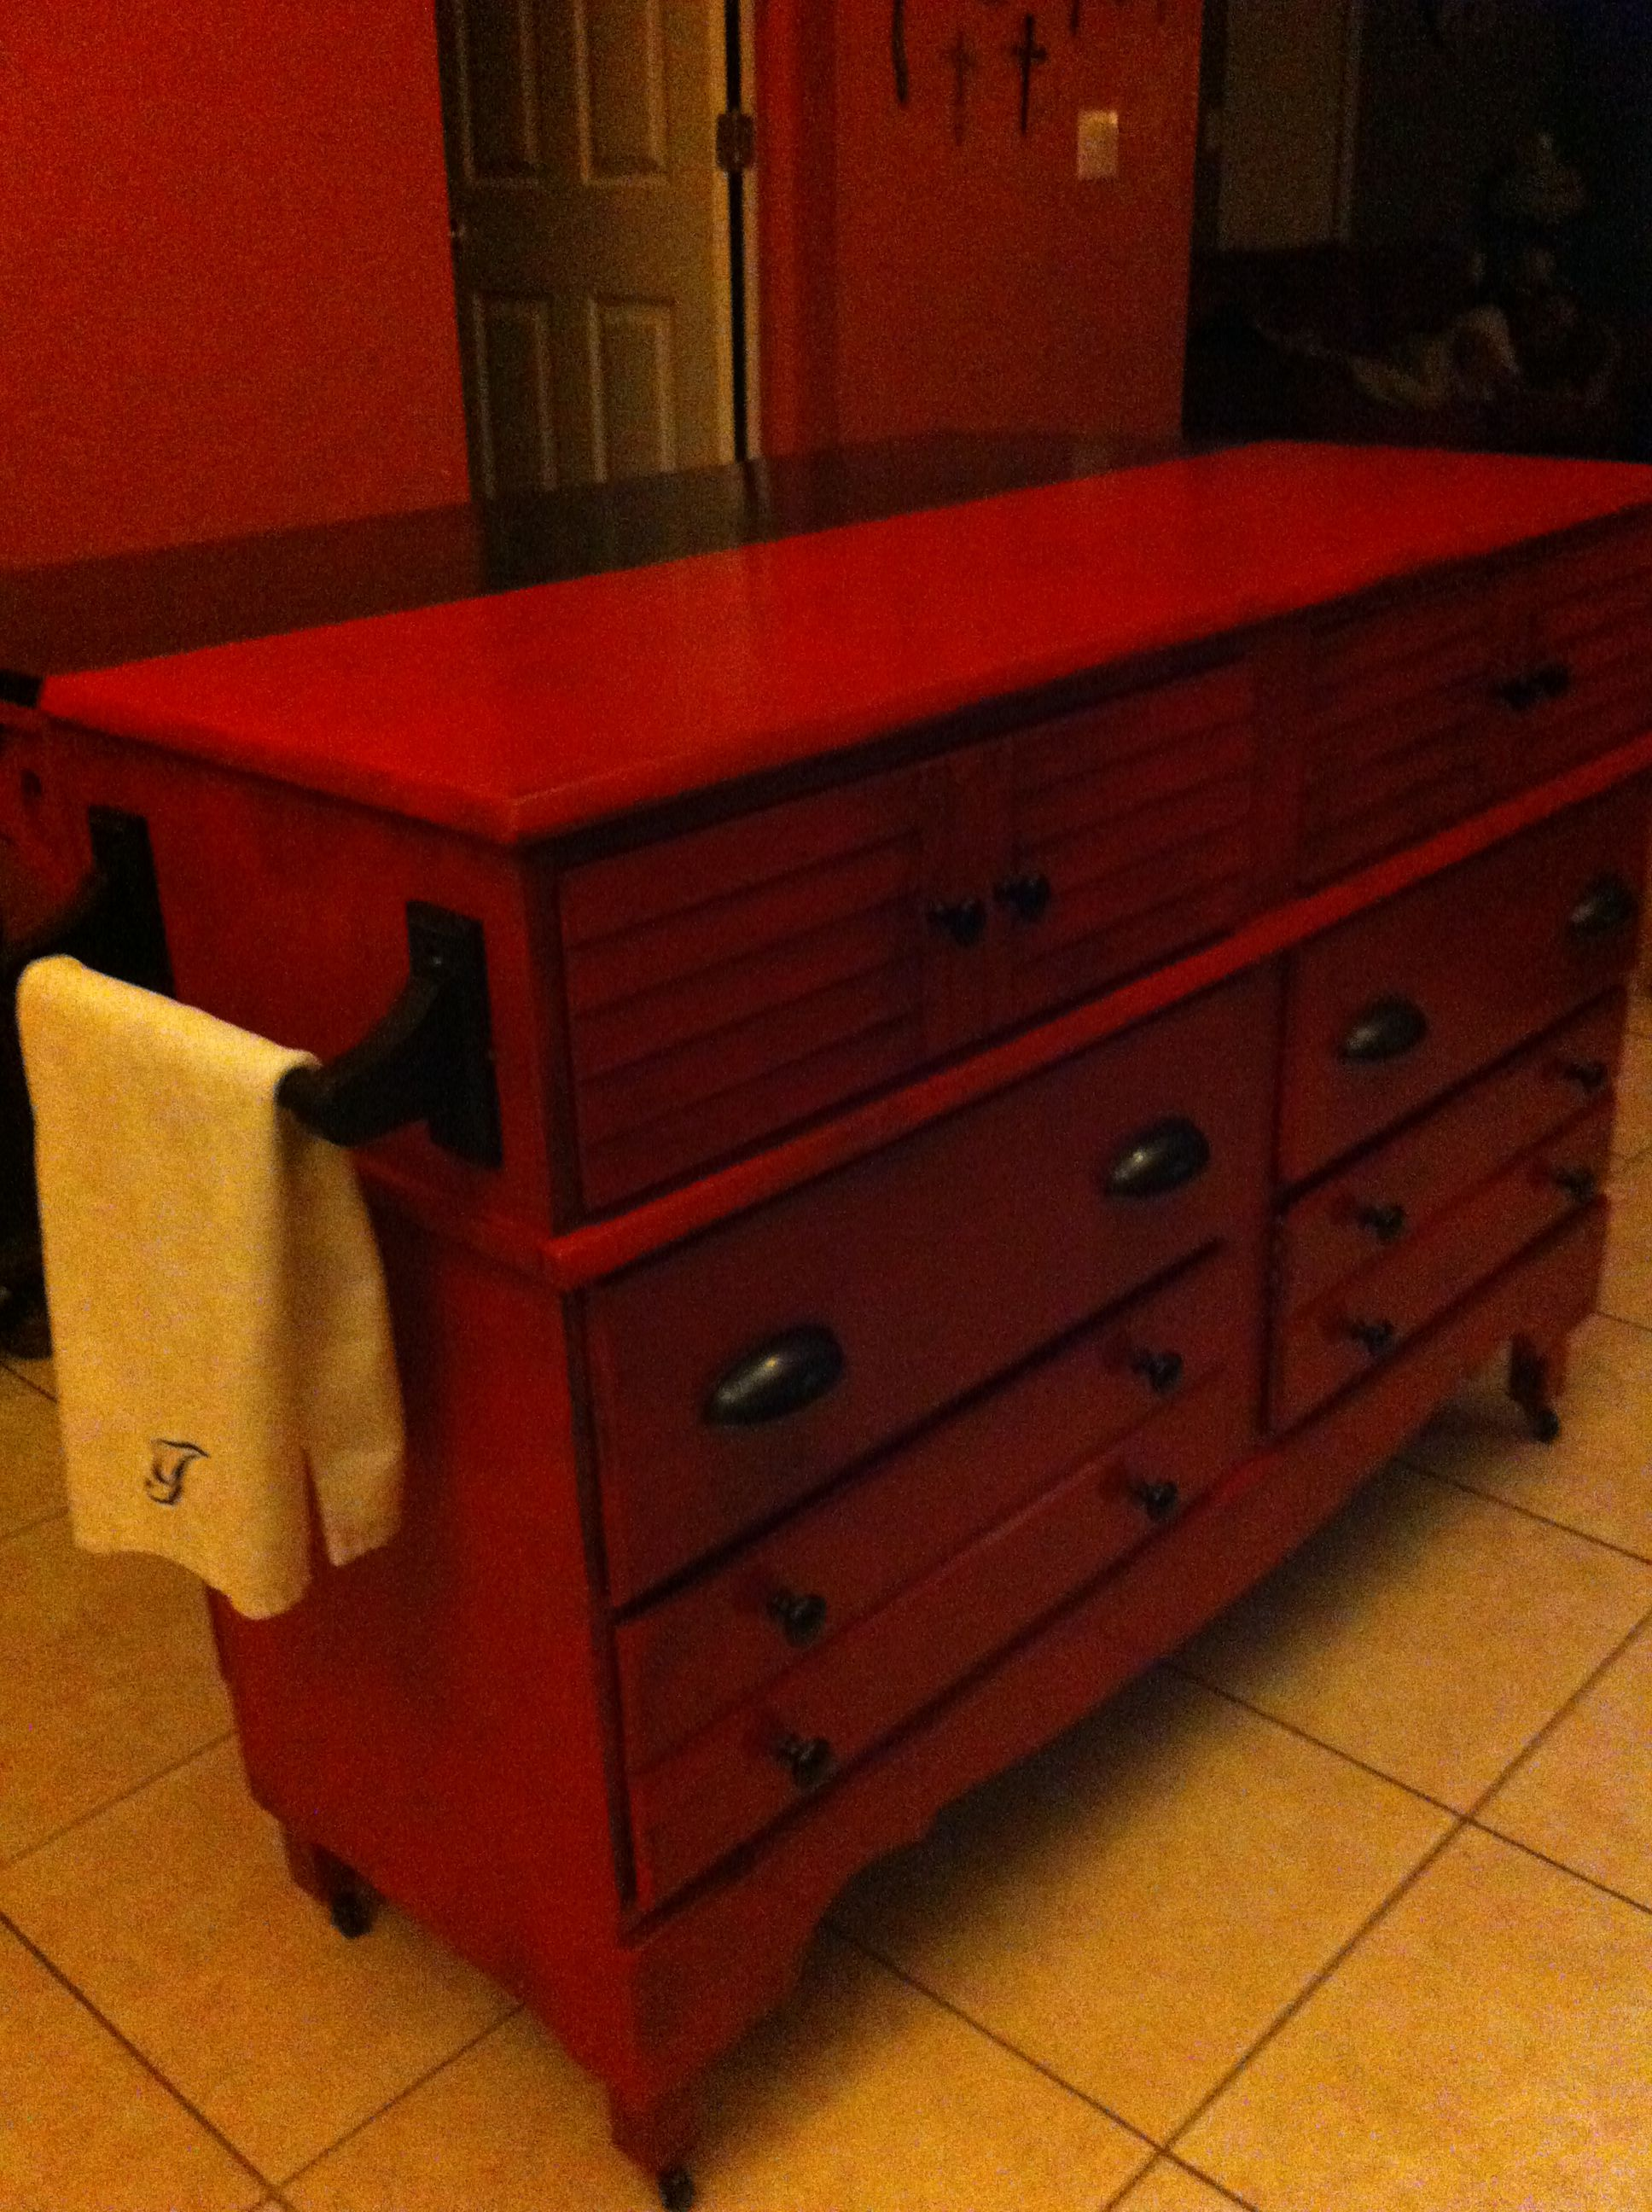 Repurposed Antique Dresser As A Kitchen Island With A: DIY Repurposed An Old Dresser To A Kitchen Island With